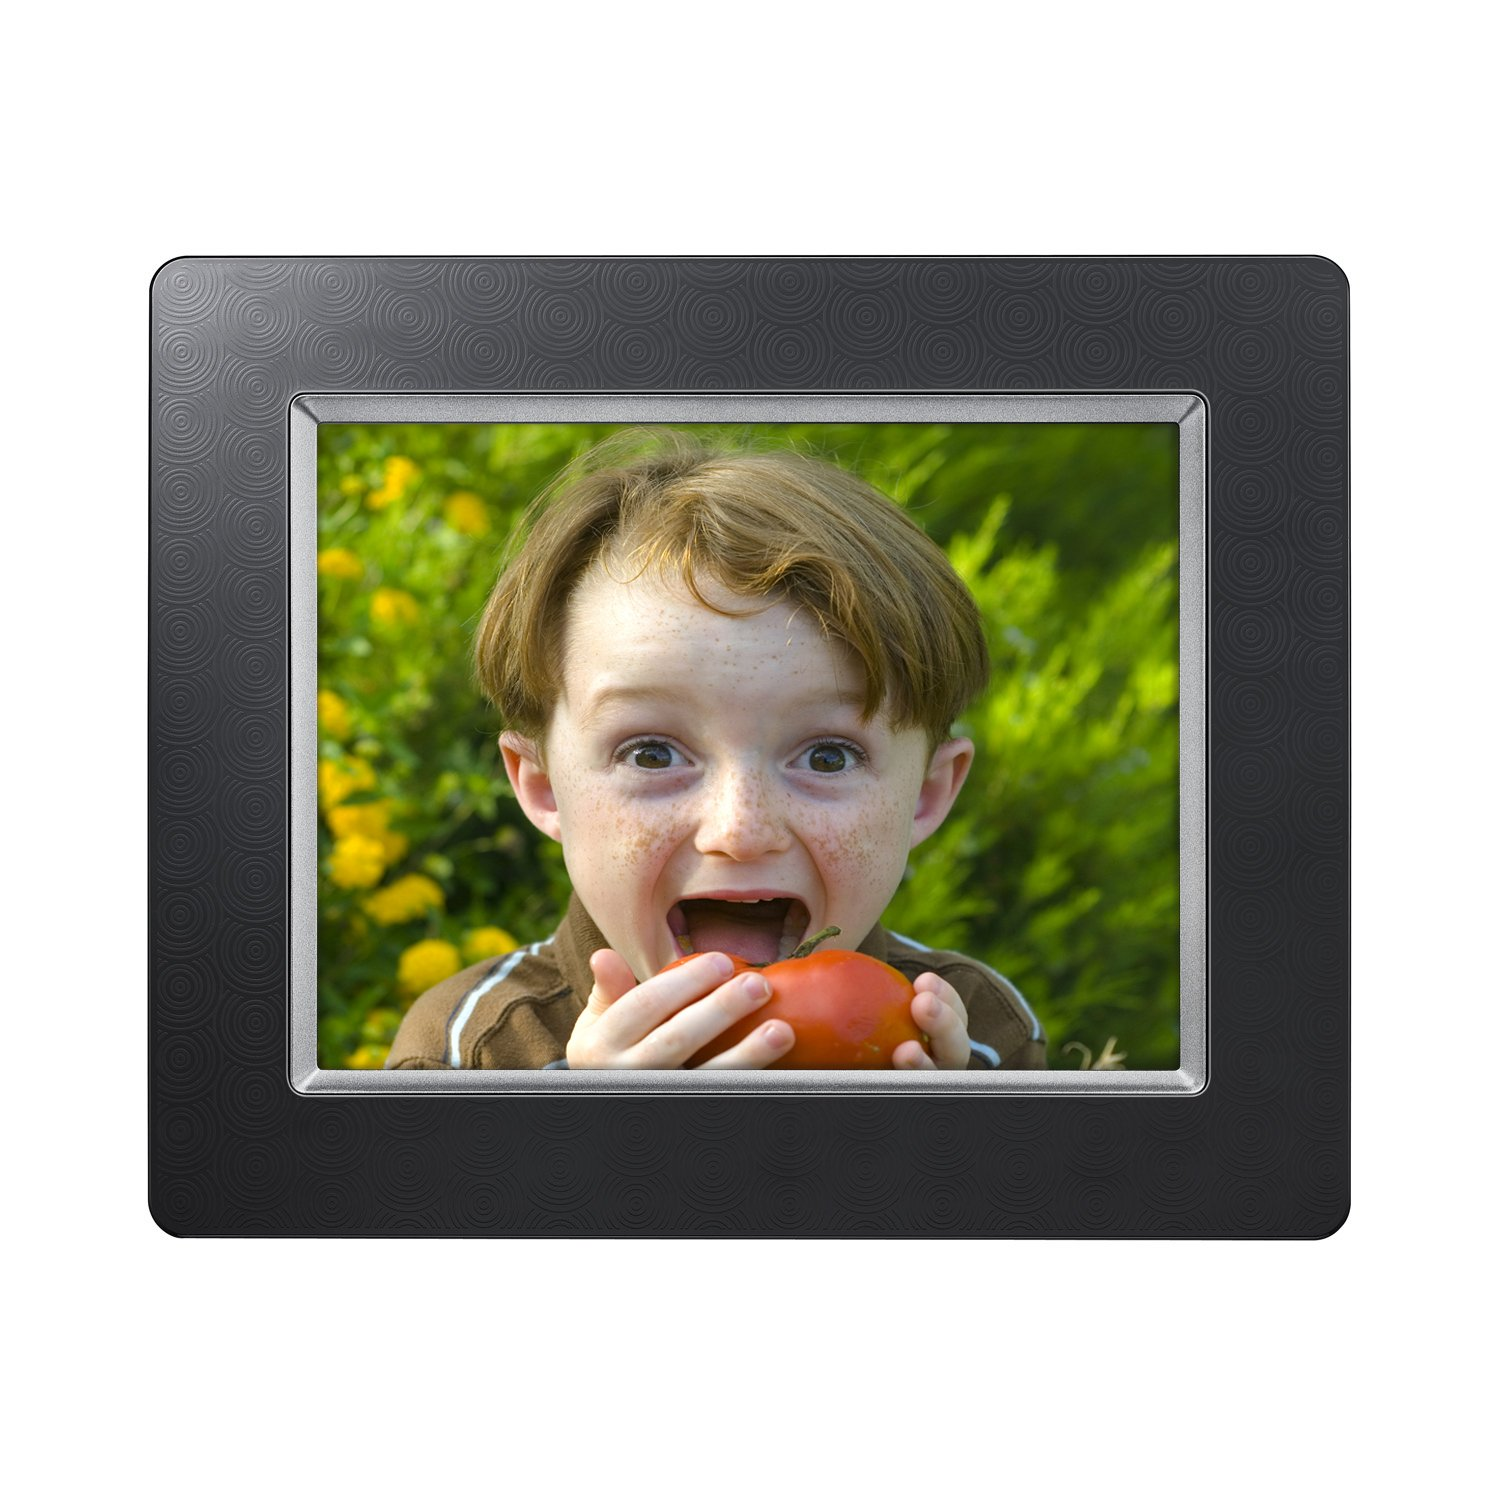 Amazon.com : Samsung SPF-85H 8-Inch Digital Photo Frame UbiSync USB ...